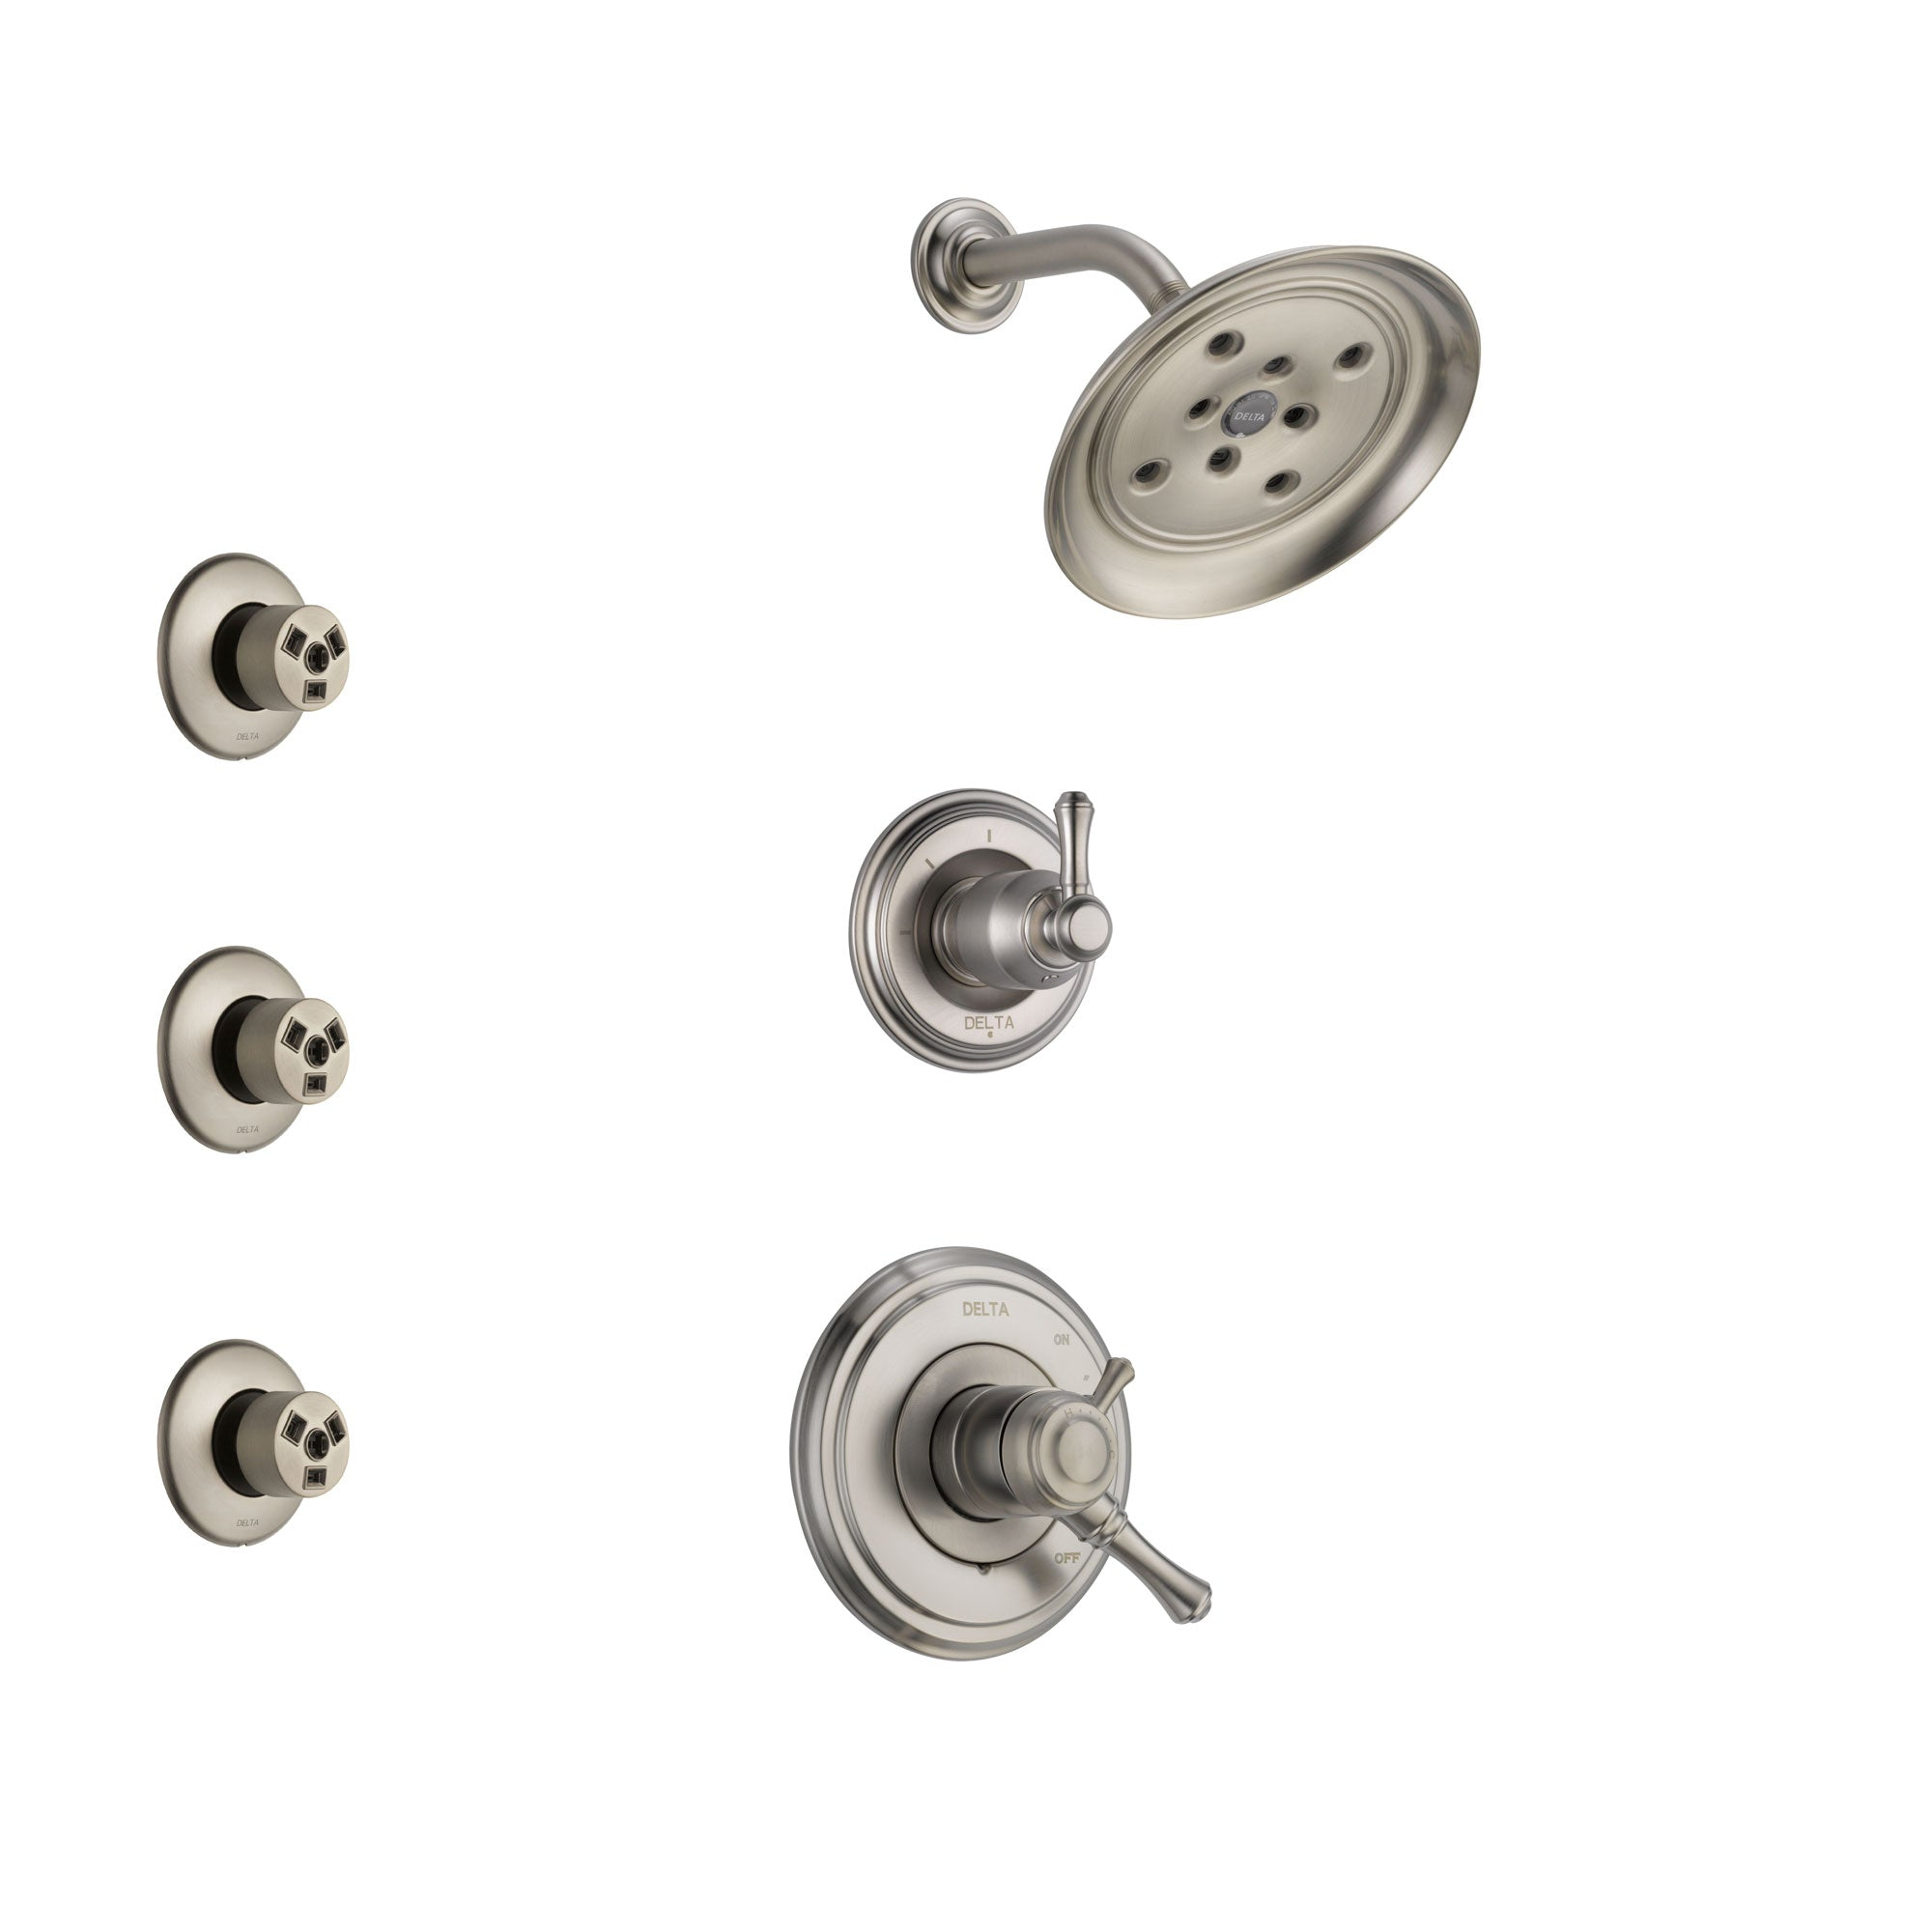 Delta Cassidy Stainless Steel Finish Shower System with Dual Control Handle, 3-Setting Diverter, Showerhead, and 3 Body Sprays SS17297SS1